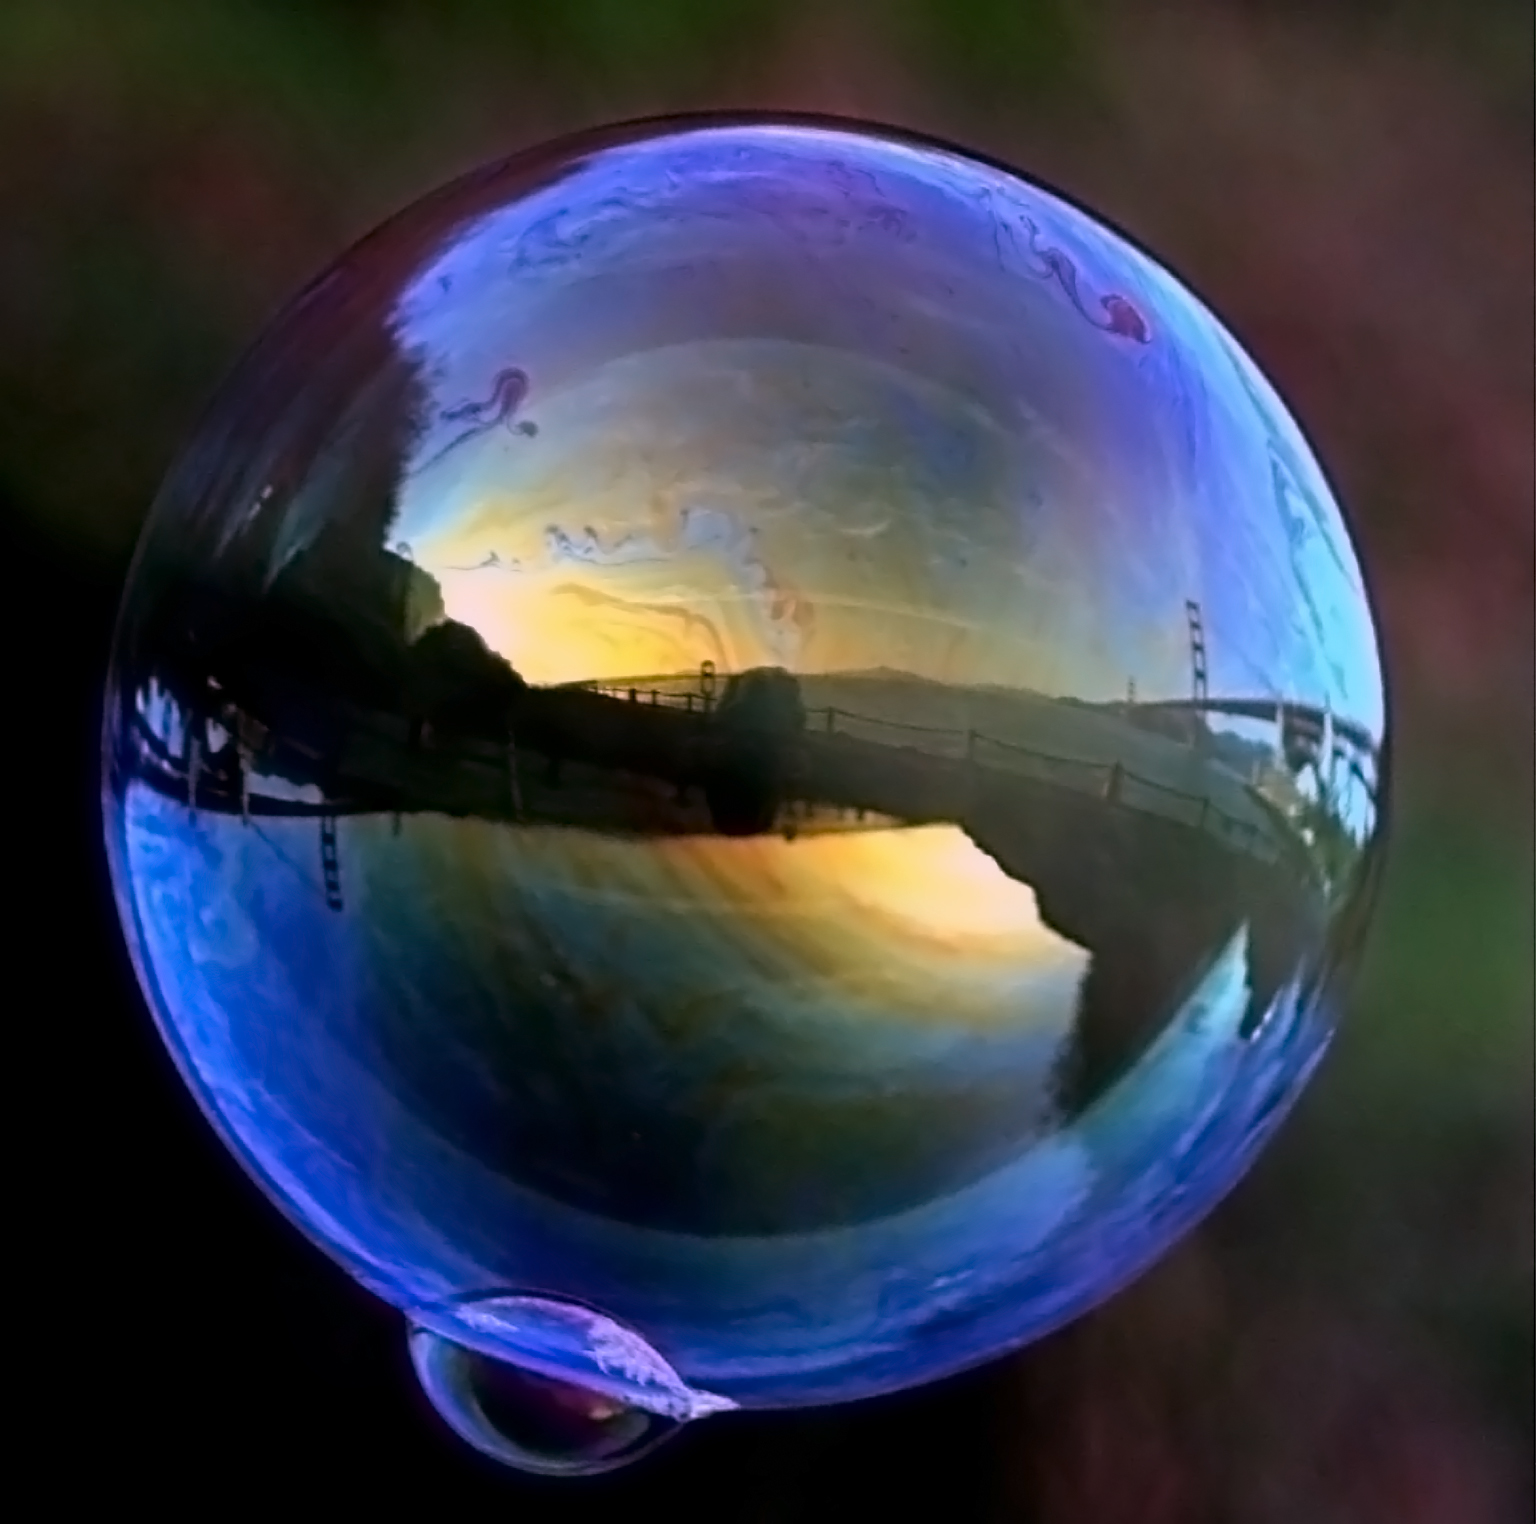 http://upload.wikimedia.org/wikipedia/commons/1/1f/Ggb_in_soap_bubble_1.jpg